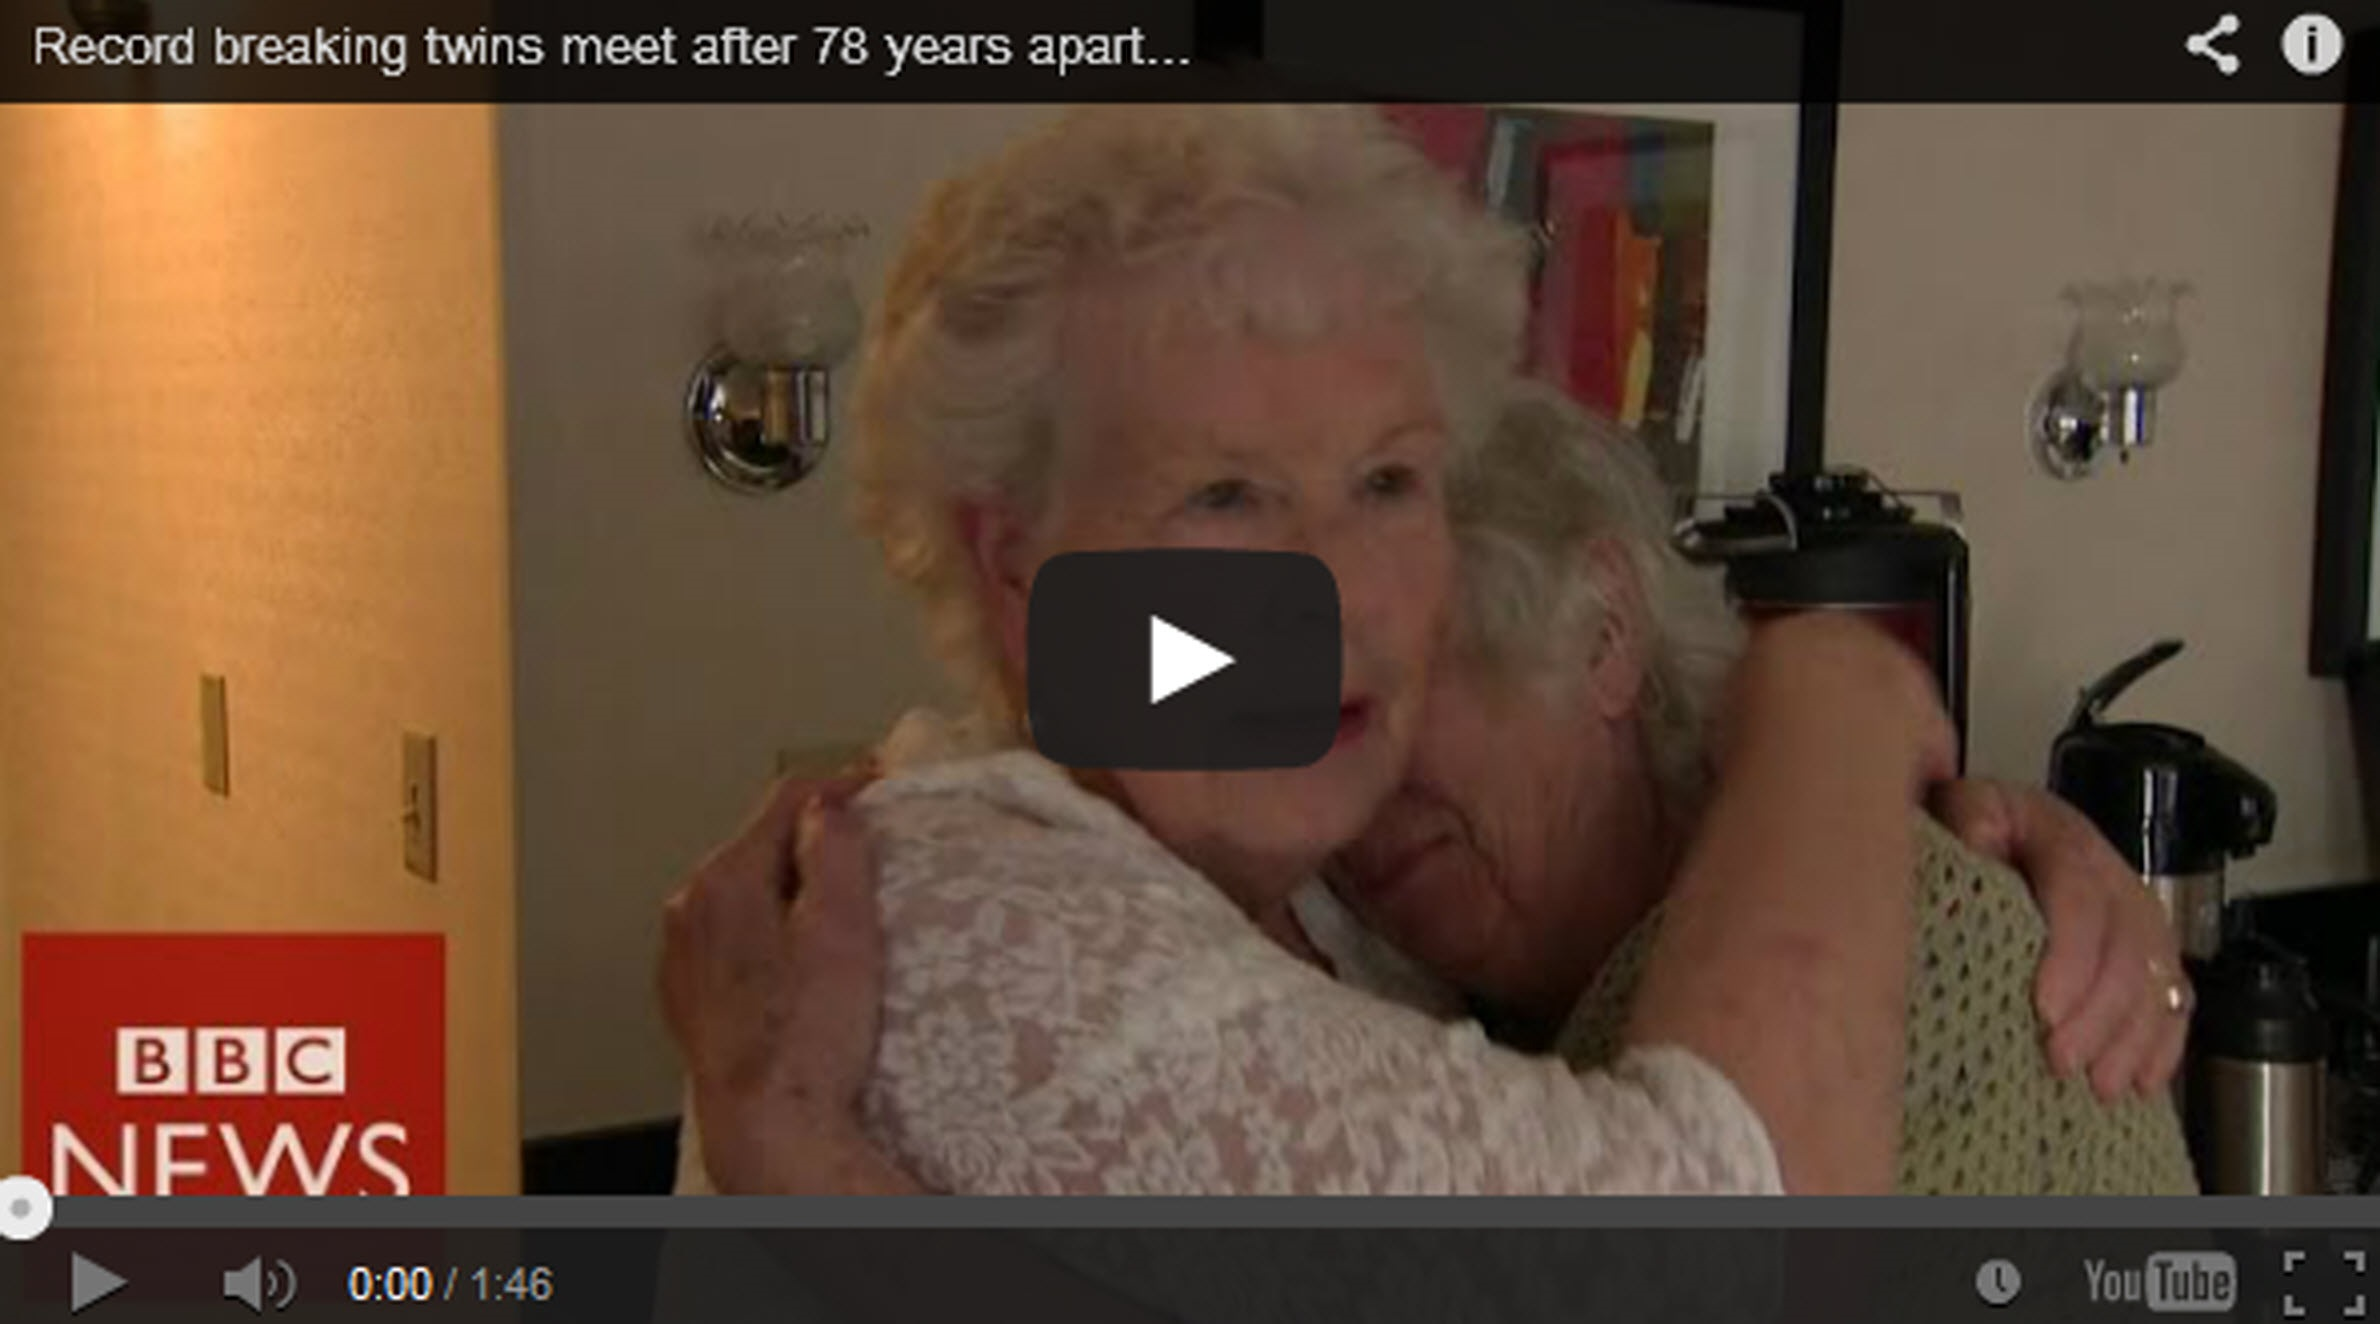 Twins Reunited 78 Years After Separation at Birth